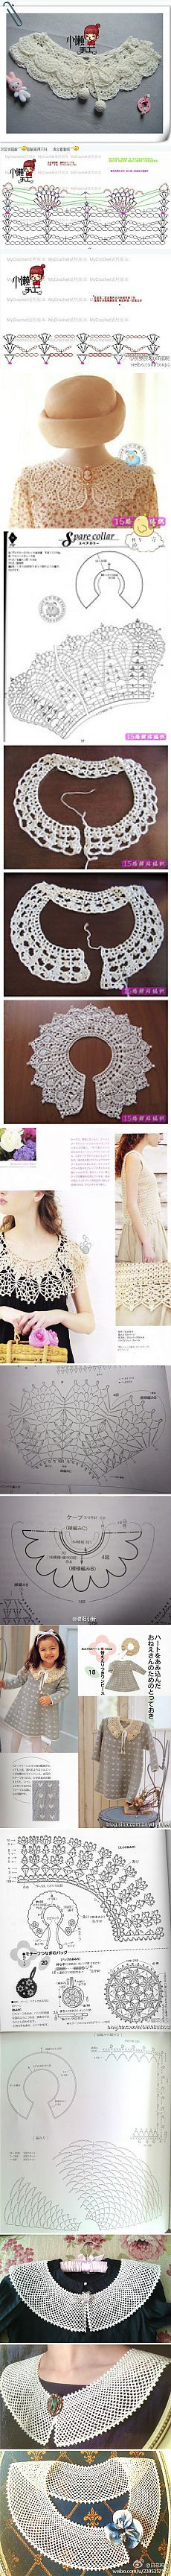 Knit crochet collar and napkins.  Schemes attached ..